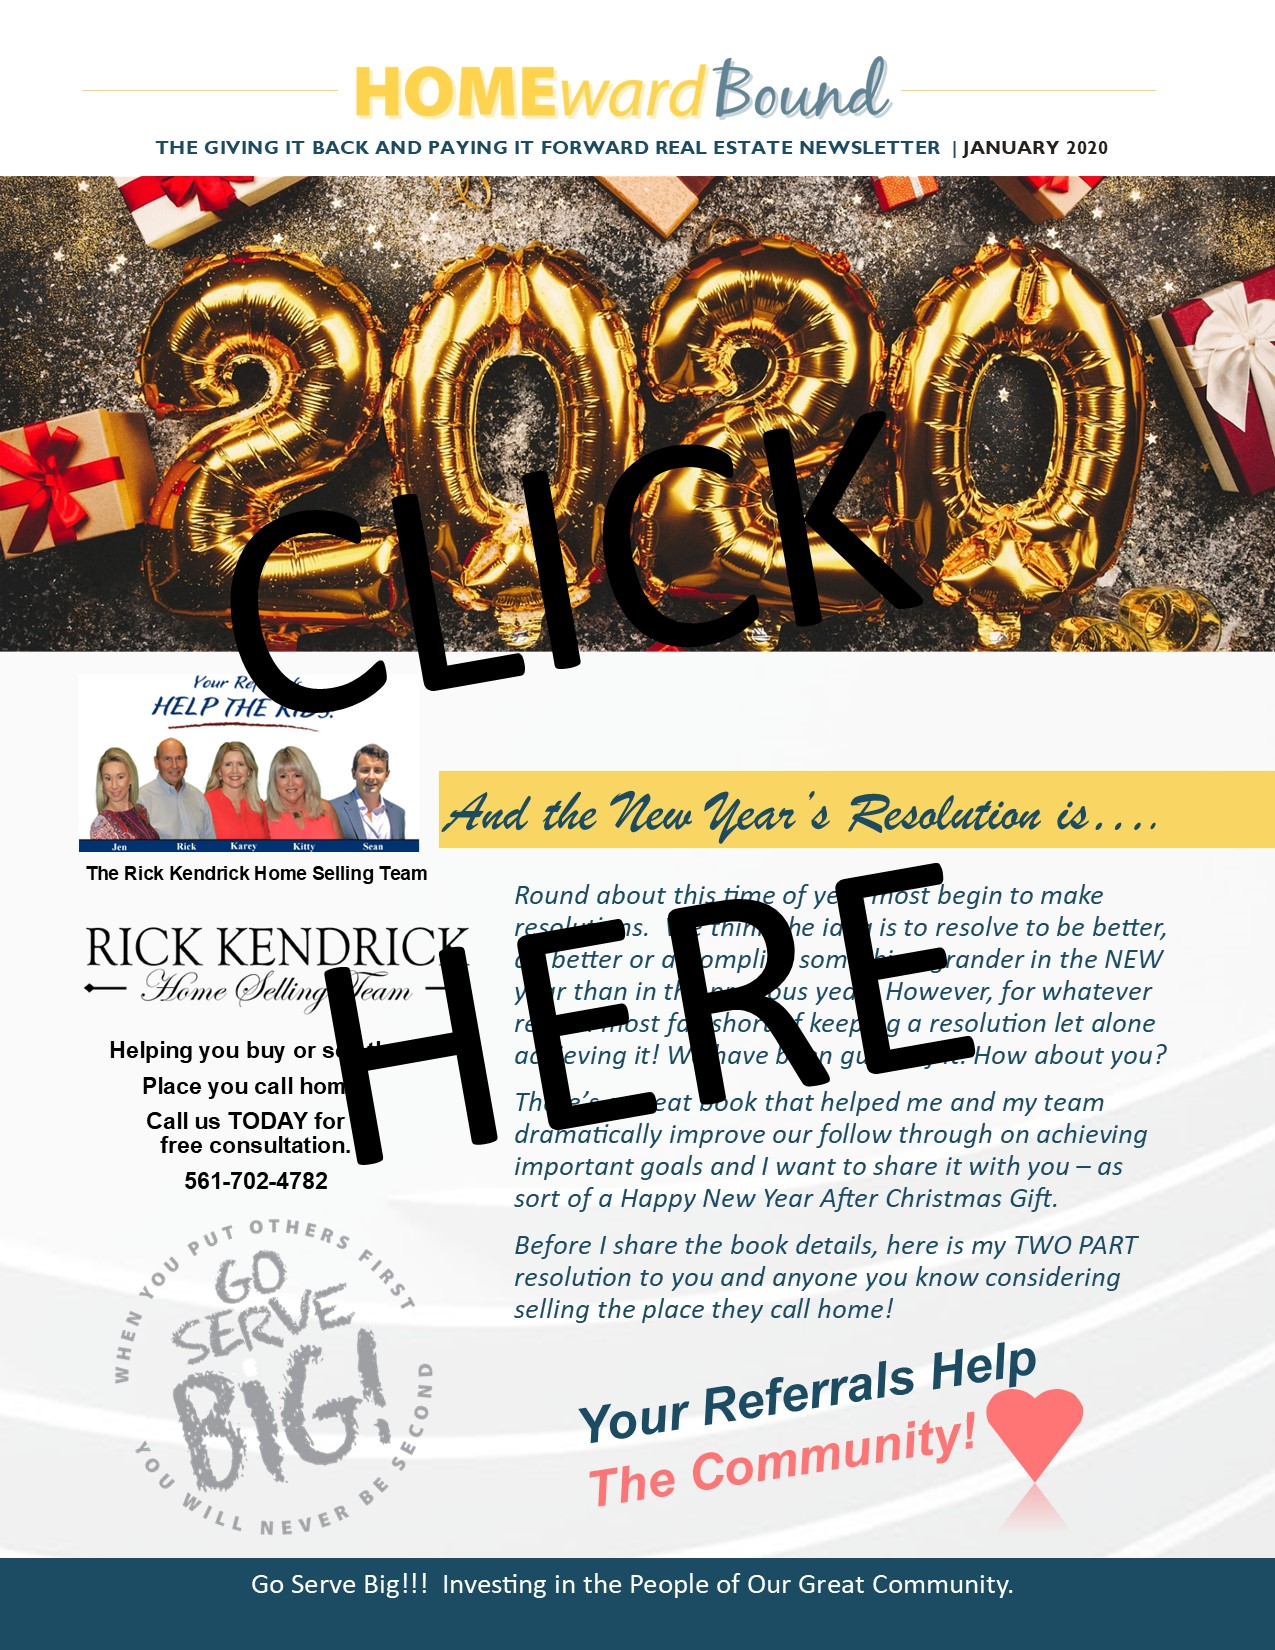 HomeWard Bound Referral Newsletter January 2020.jpg